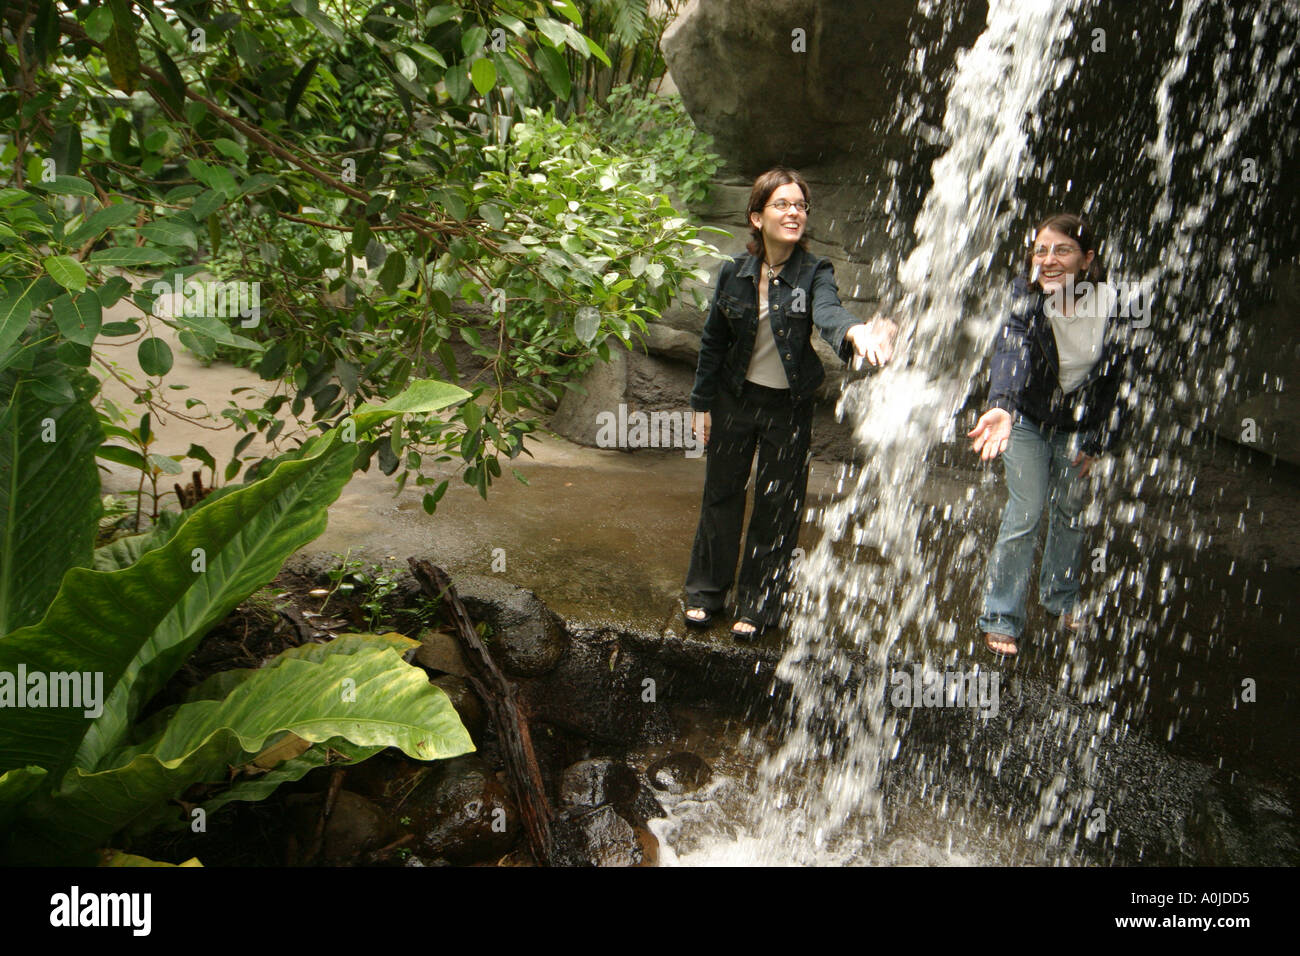 cleveland ohio university circle cleveland botanical garden visitors artificial waterfall tropical plants stock image - Botanical Garden Cleveland